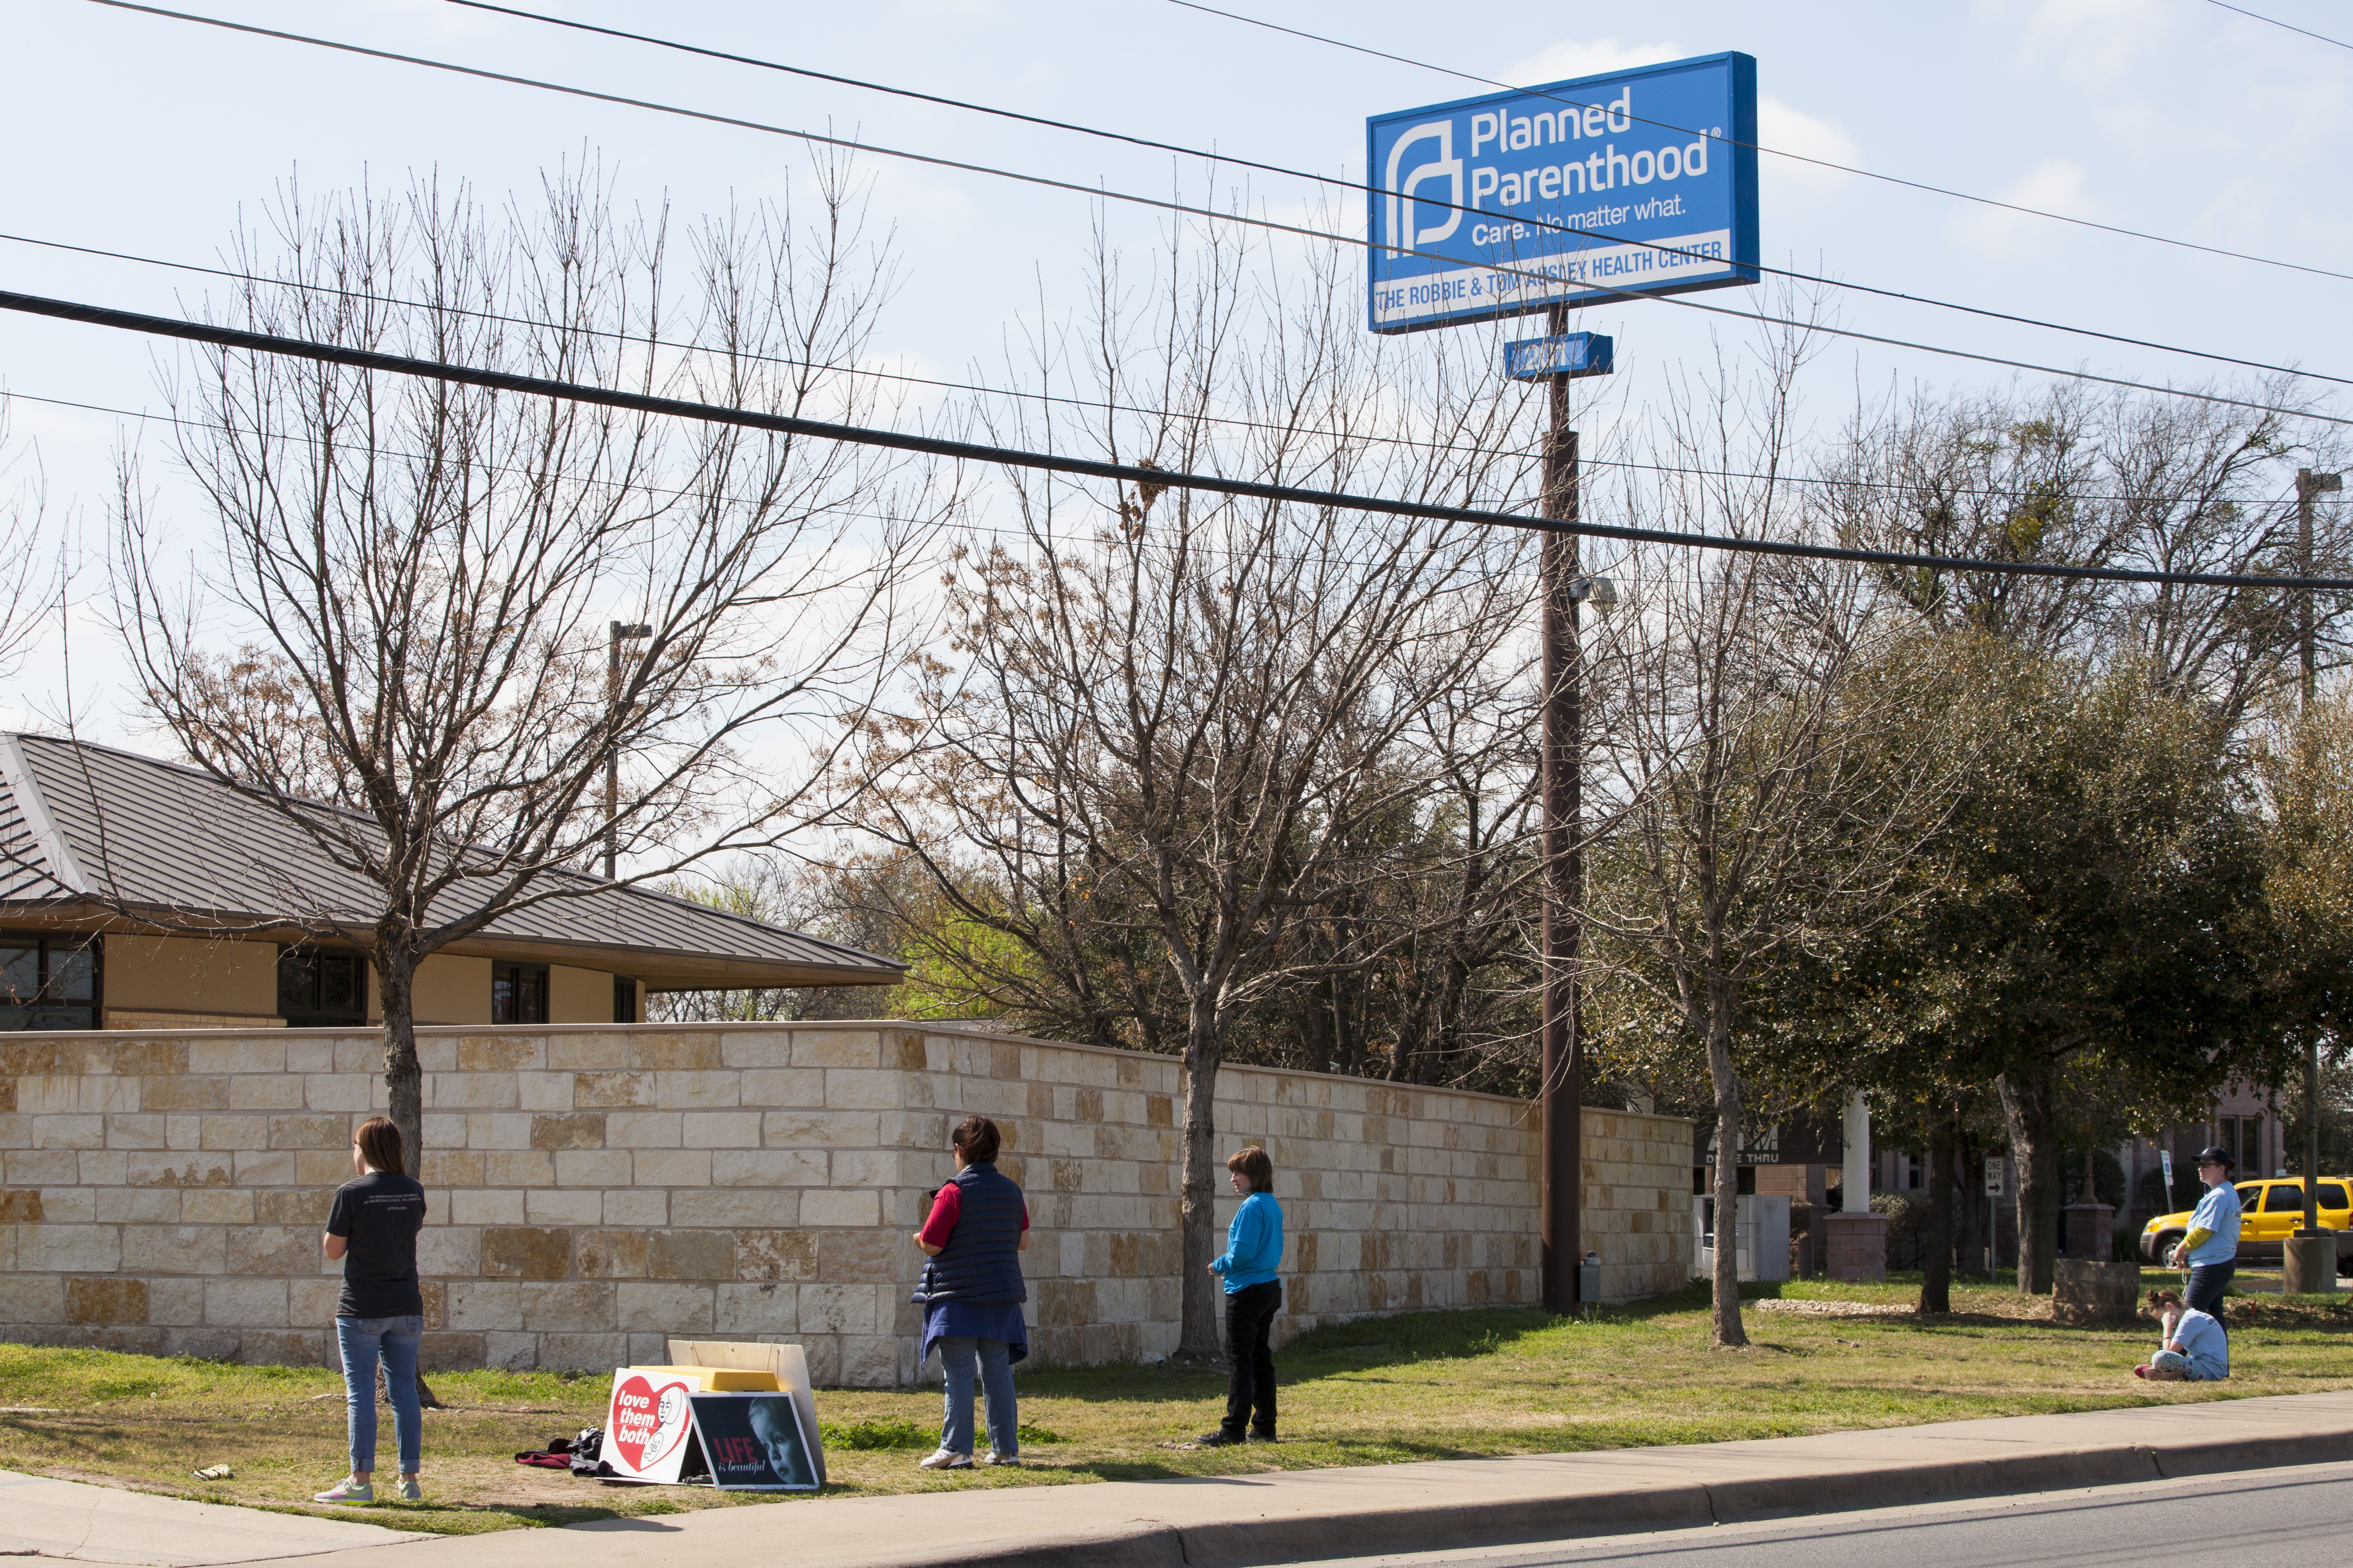 Activists on both sides of the abortion debate in Texas have been active since the passage of HB2